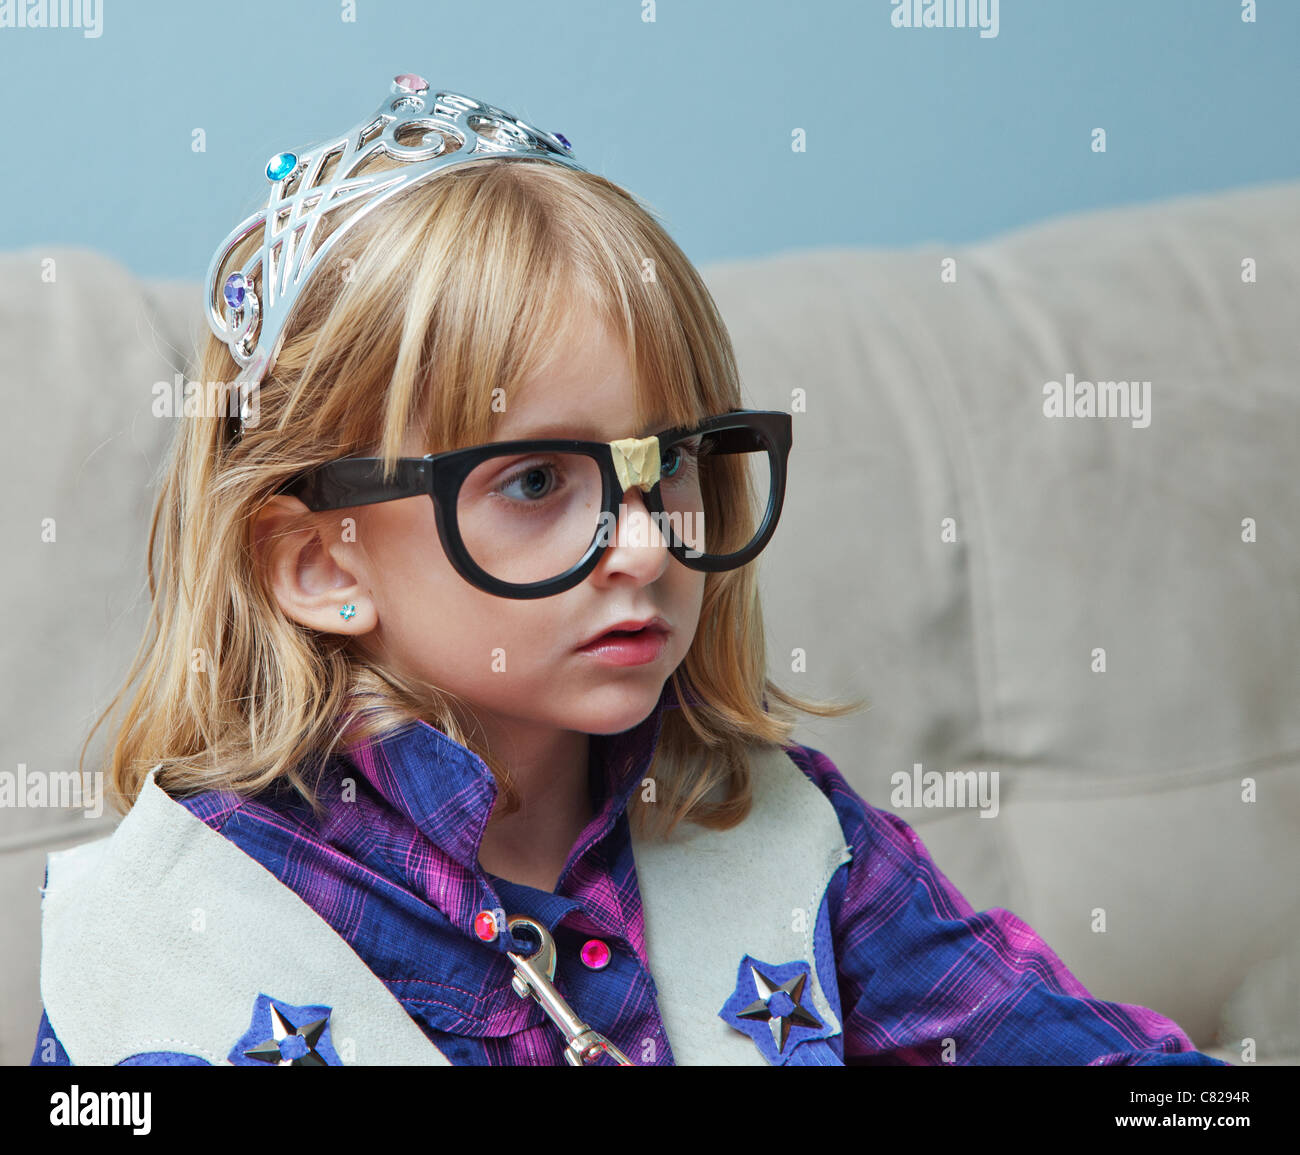 Little girl with black nerd glasses and tiara. - Stock Image